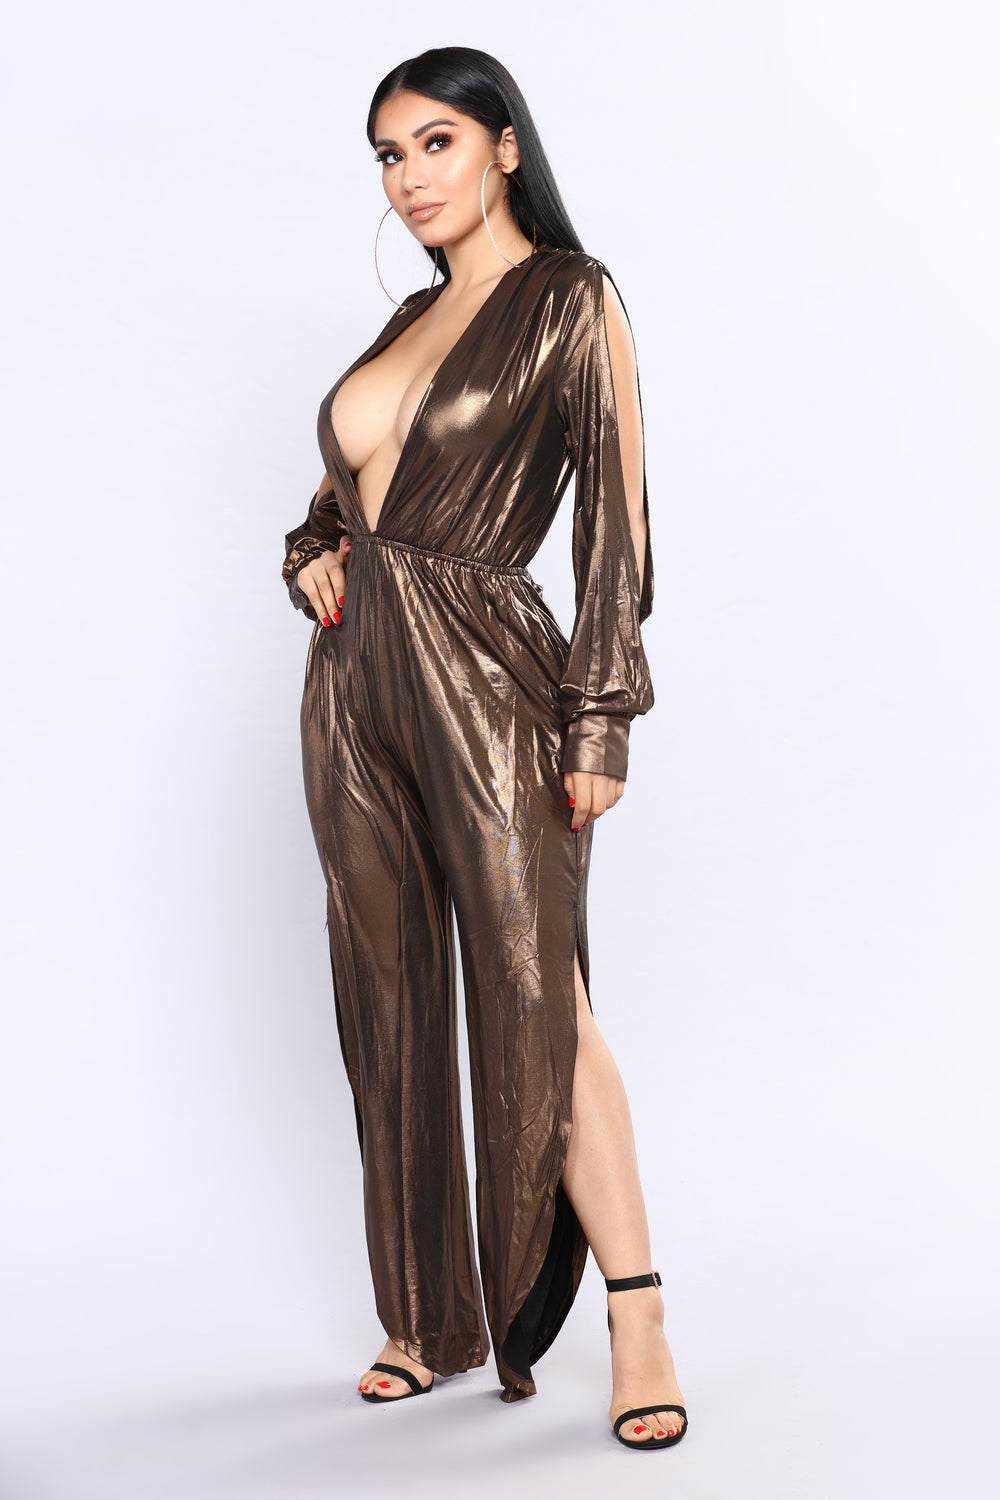 Gold Throne Metallic Jumpsuit - Bronze